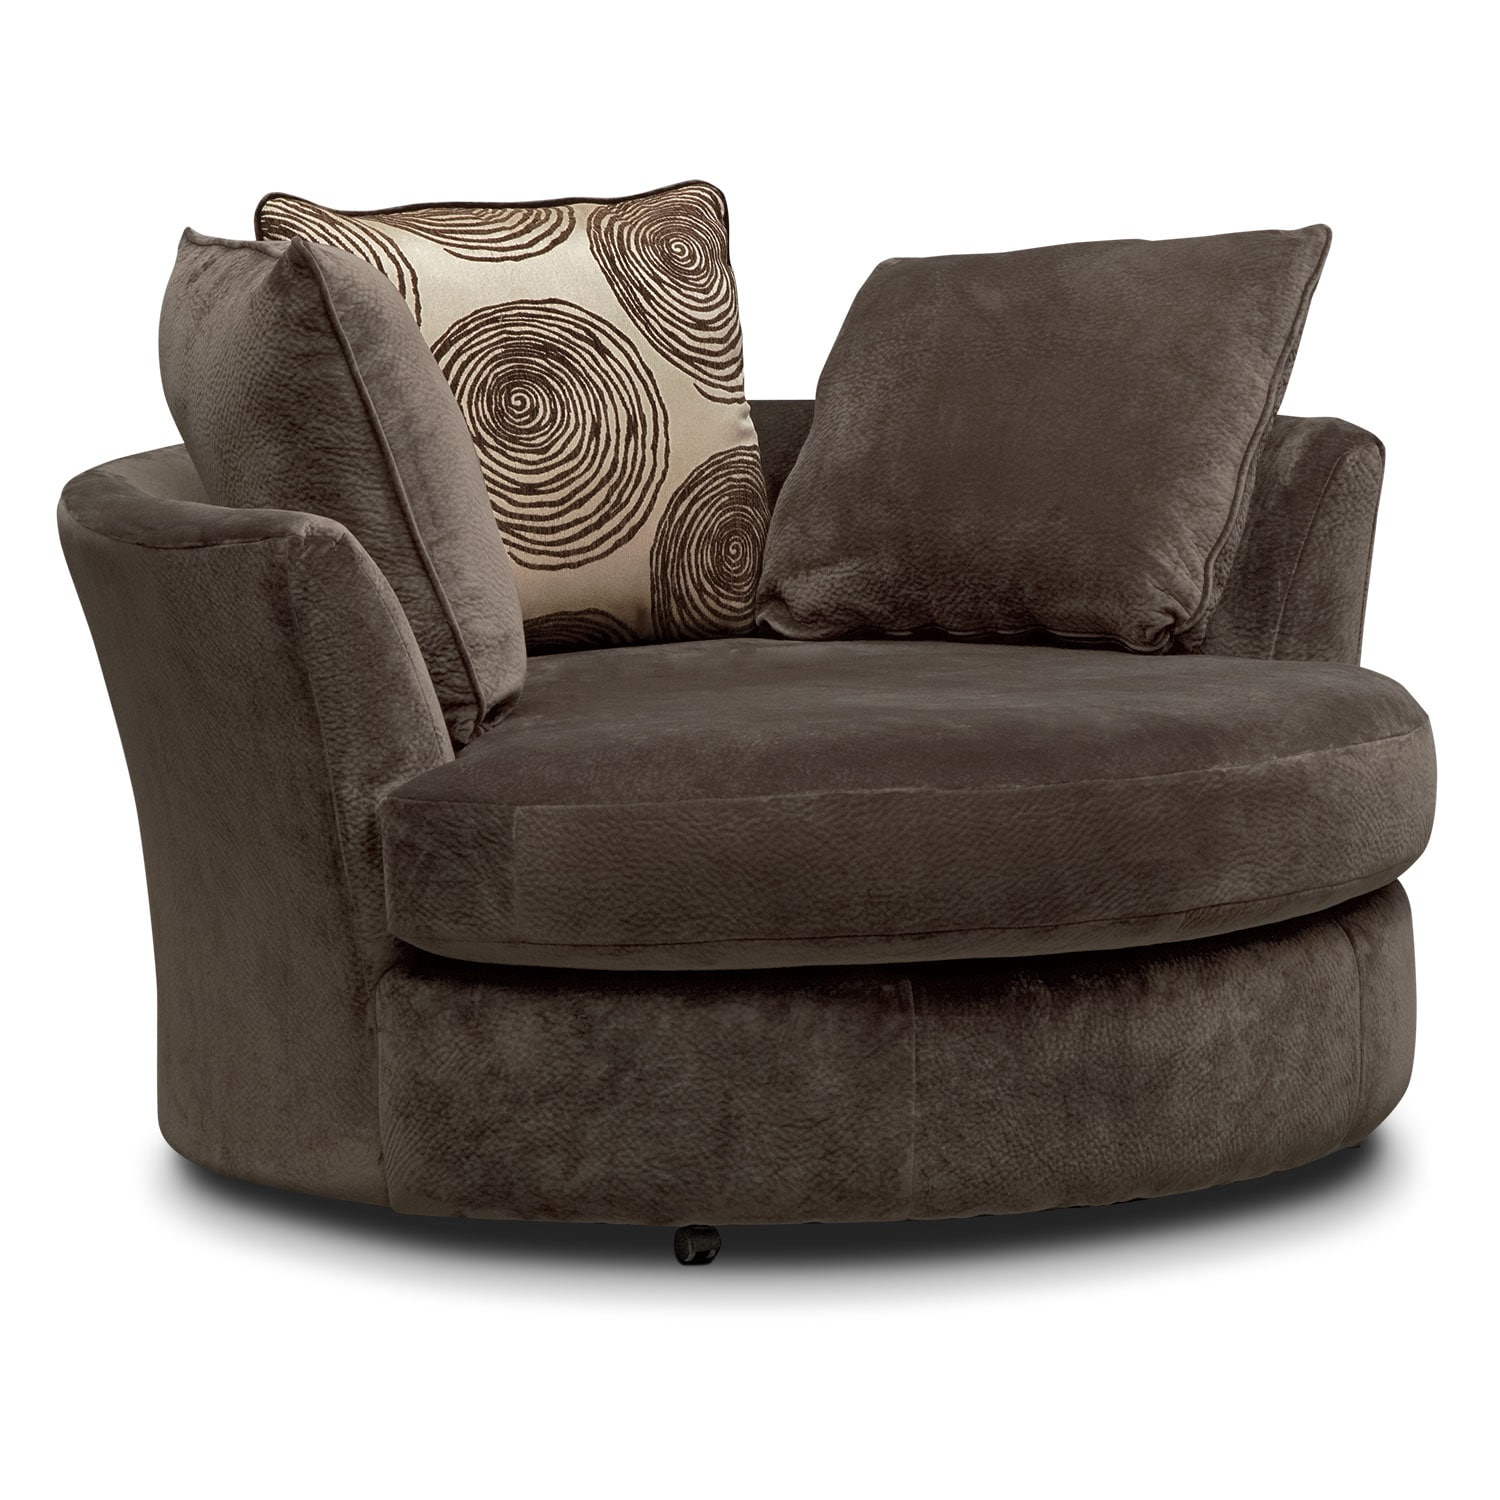 Cordelle swivel chair chocolate american signature for Furniture chairs